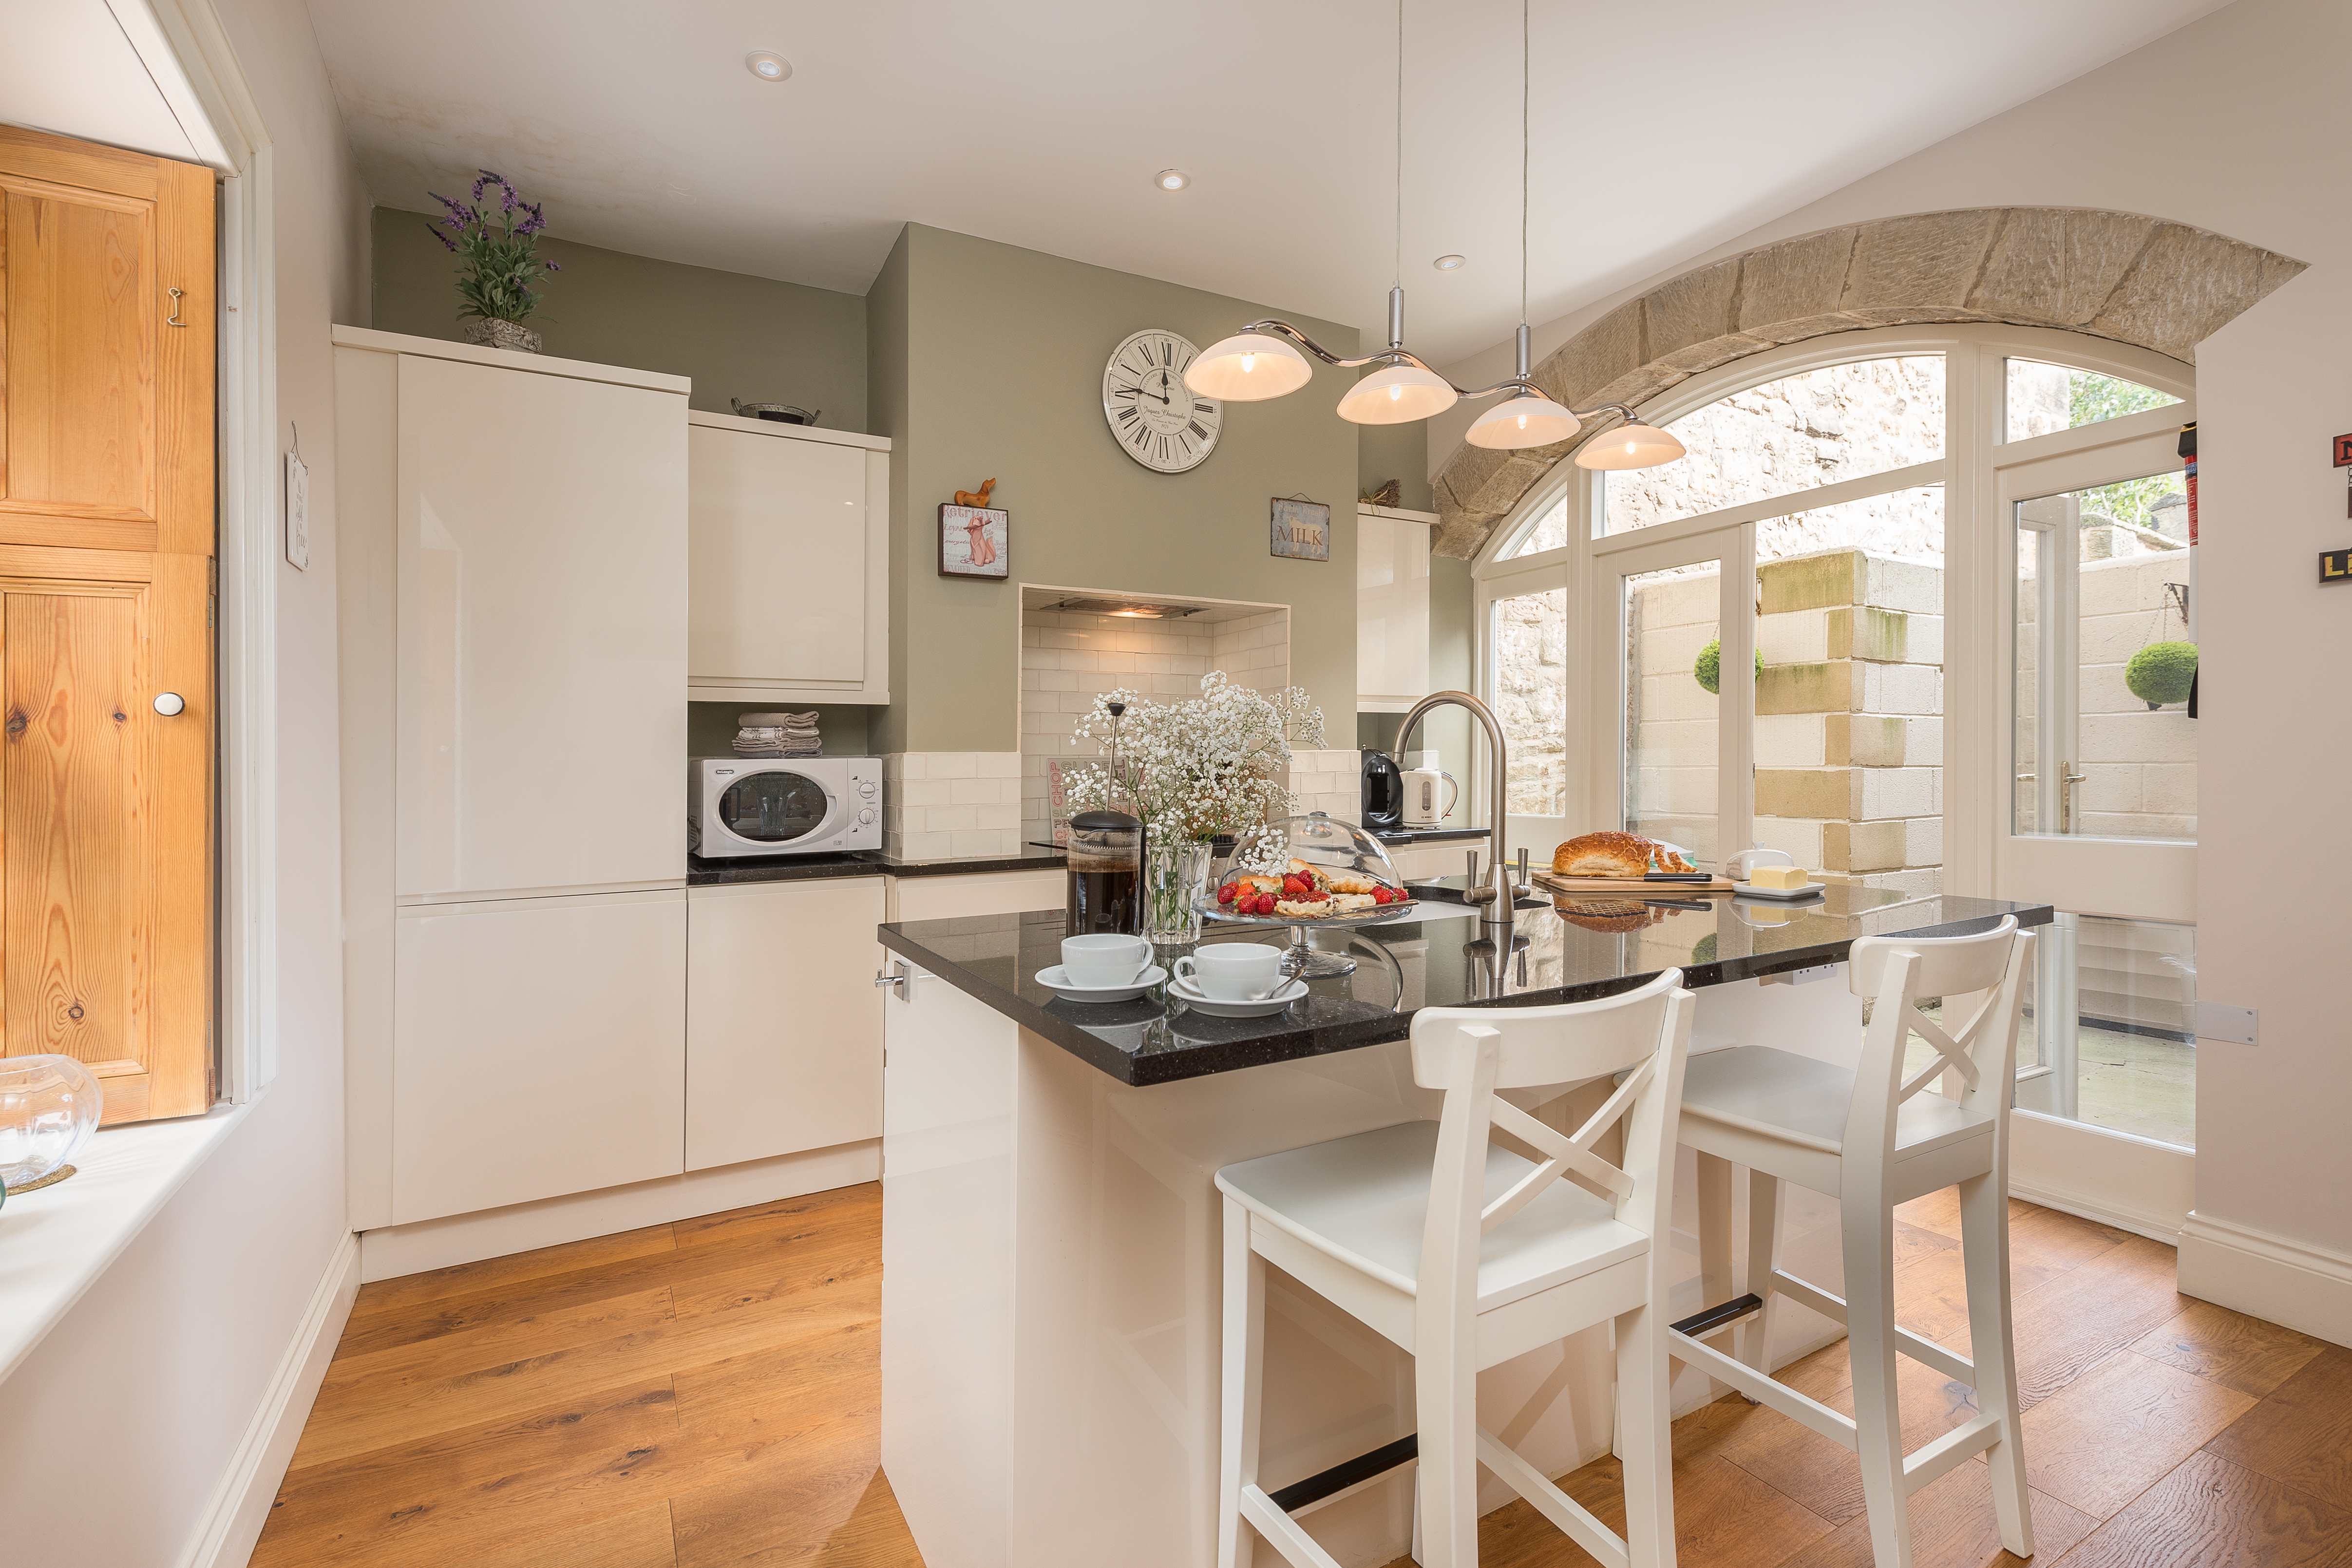 earls cottage in Alnwick luxury townhouse boutique hotel Alnwick for a wedding, accommodation close to Alnwick Gardens and Treehouse, dog friendly pets welcome cottages Alnwick 5 star